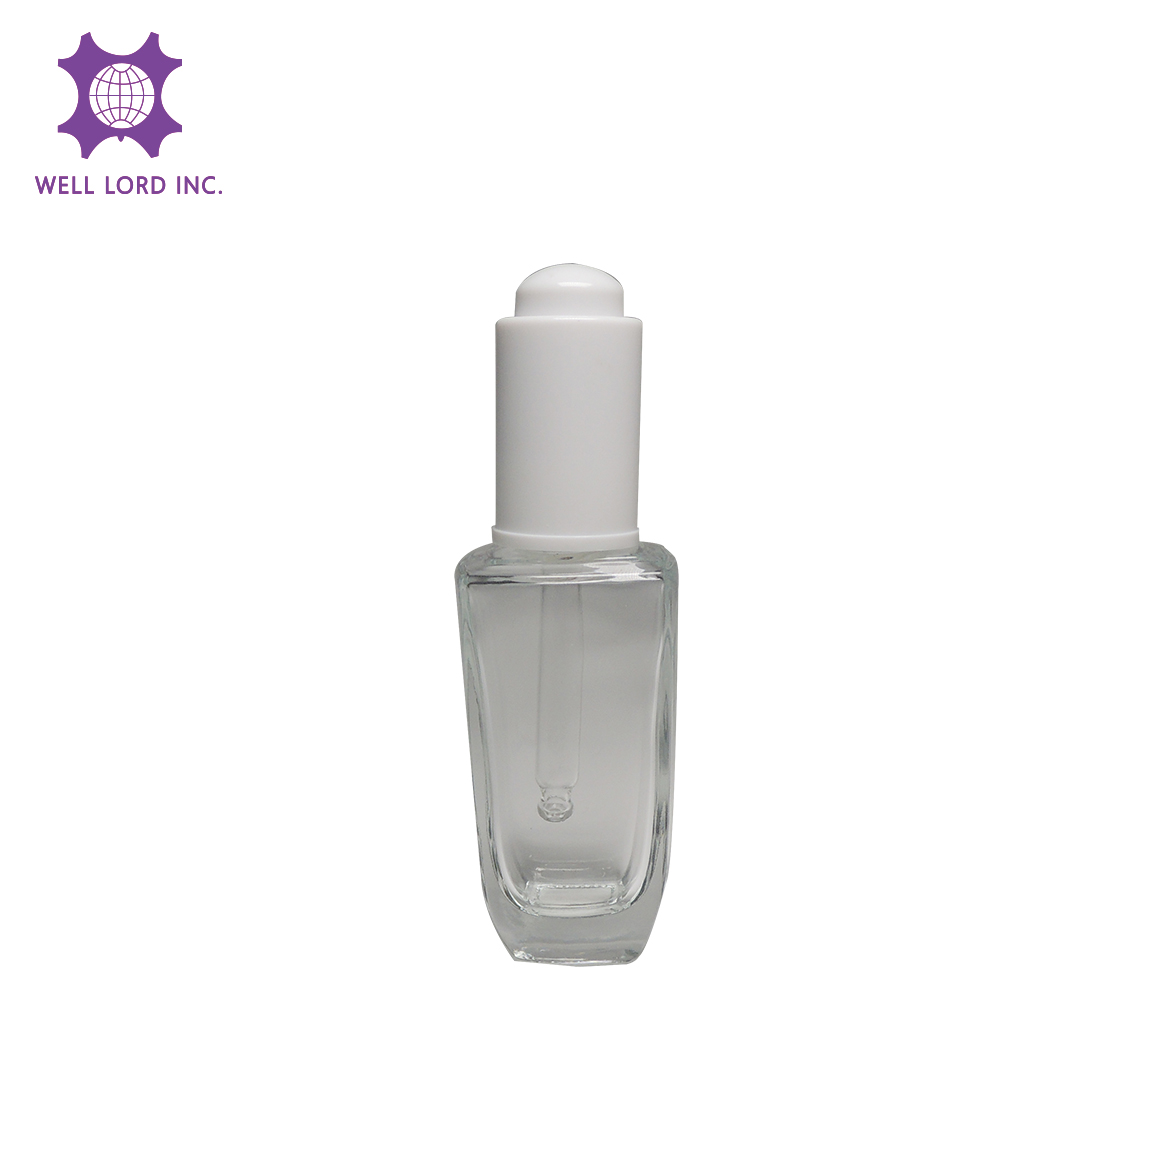 Luxury 35ml clear cylinder glass bottle with white dropper perfume dropper bottle